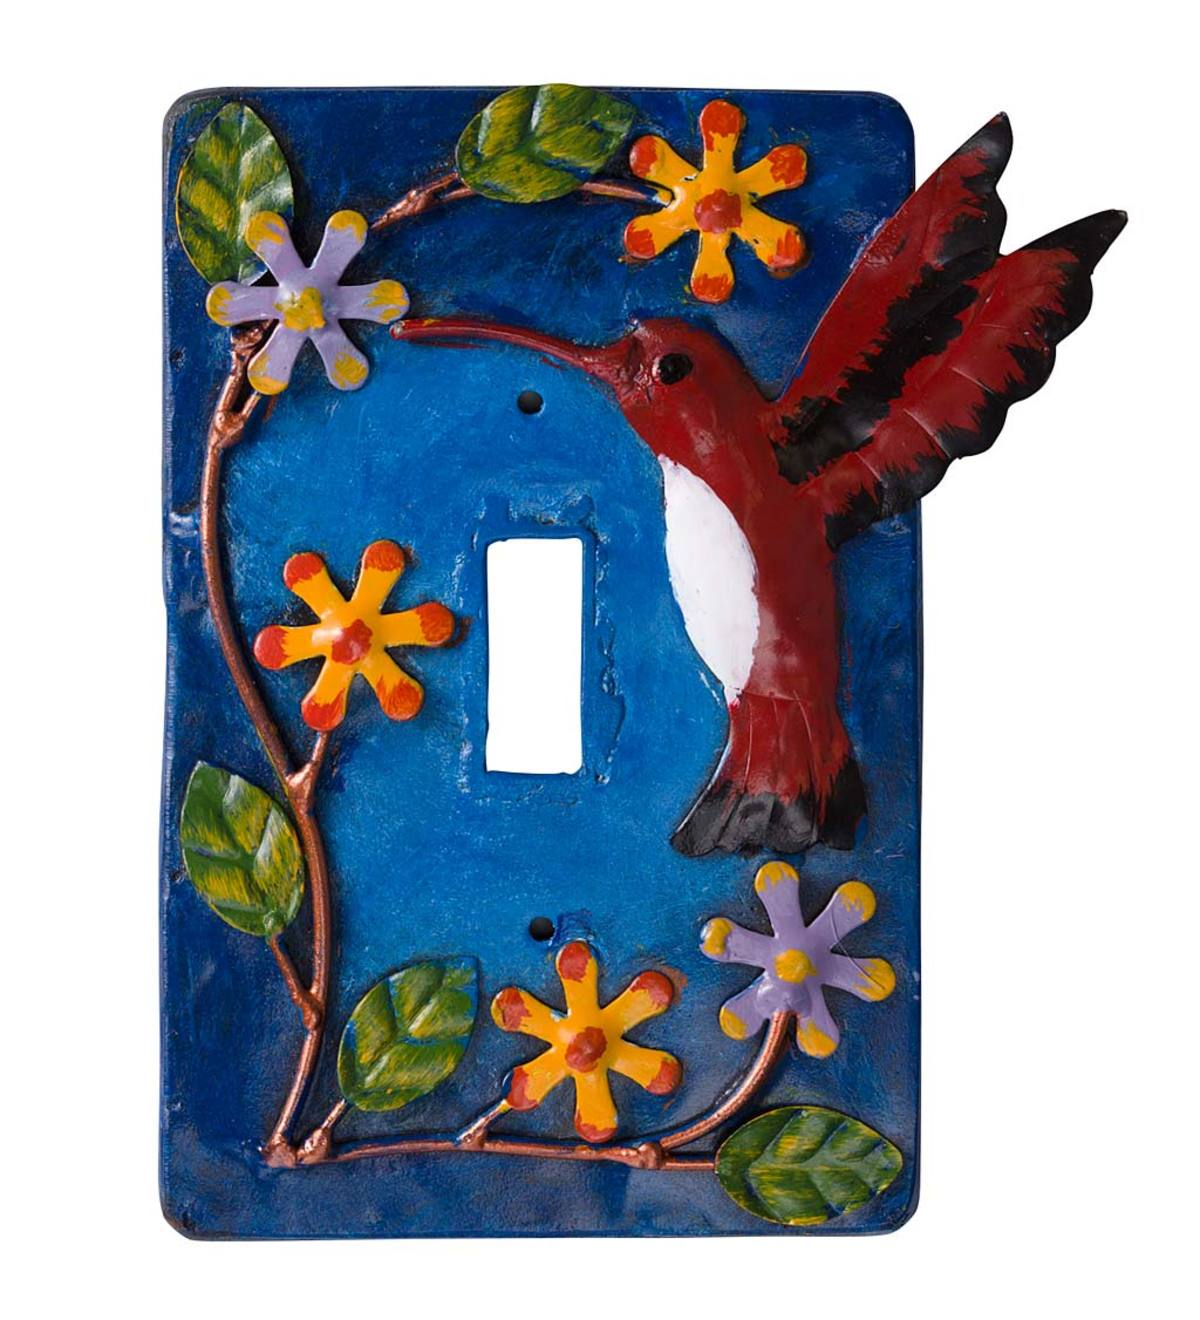 Hand-Painted Light Switch Cover - Hummingbird